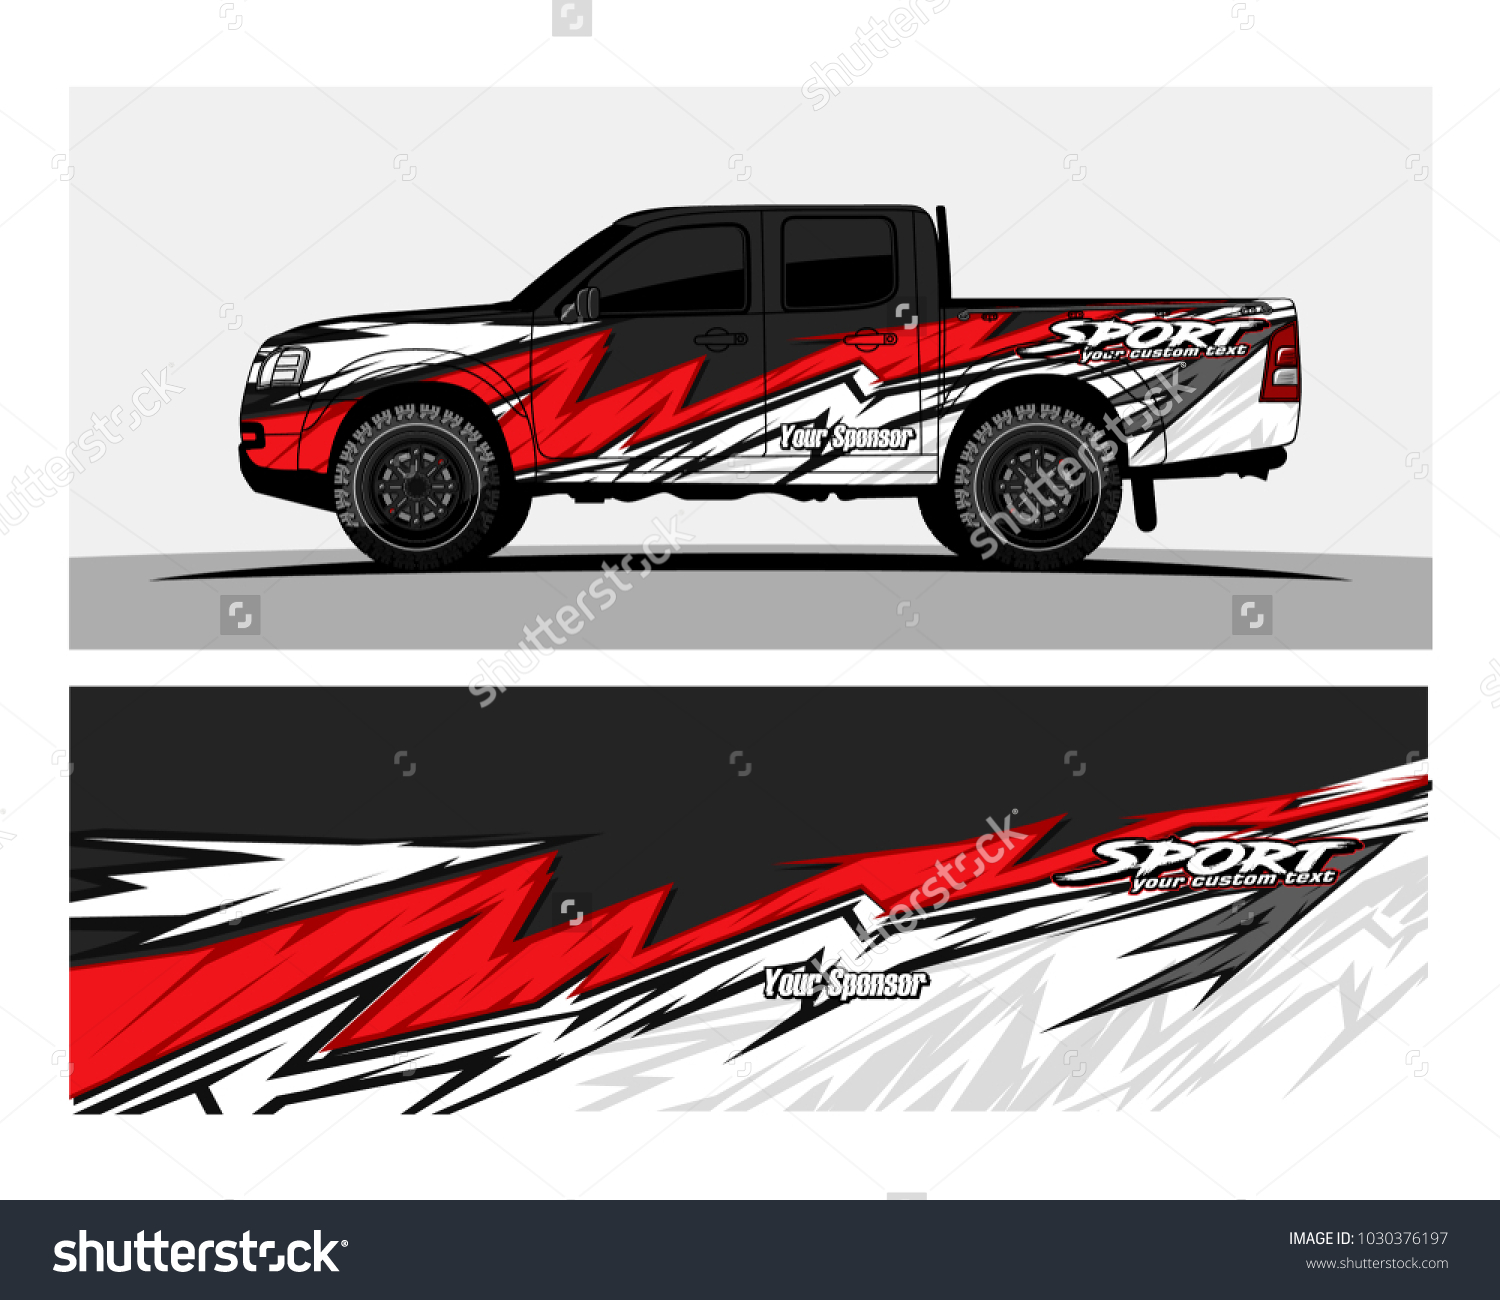 Abstract racing graphic kit background for truck car and vehicles ez canvas